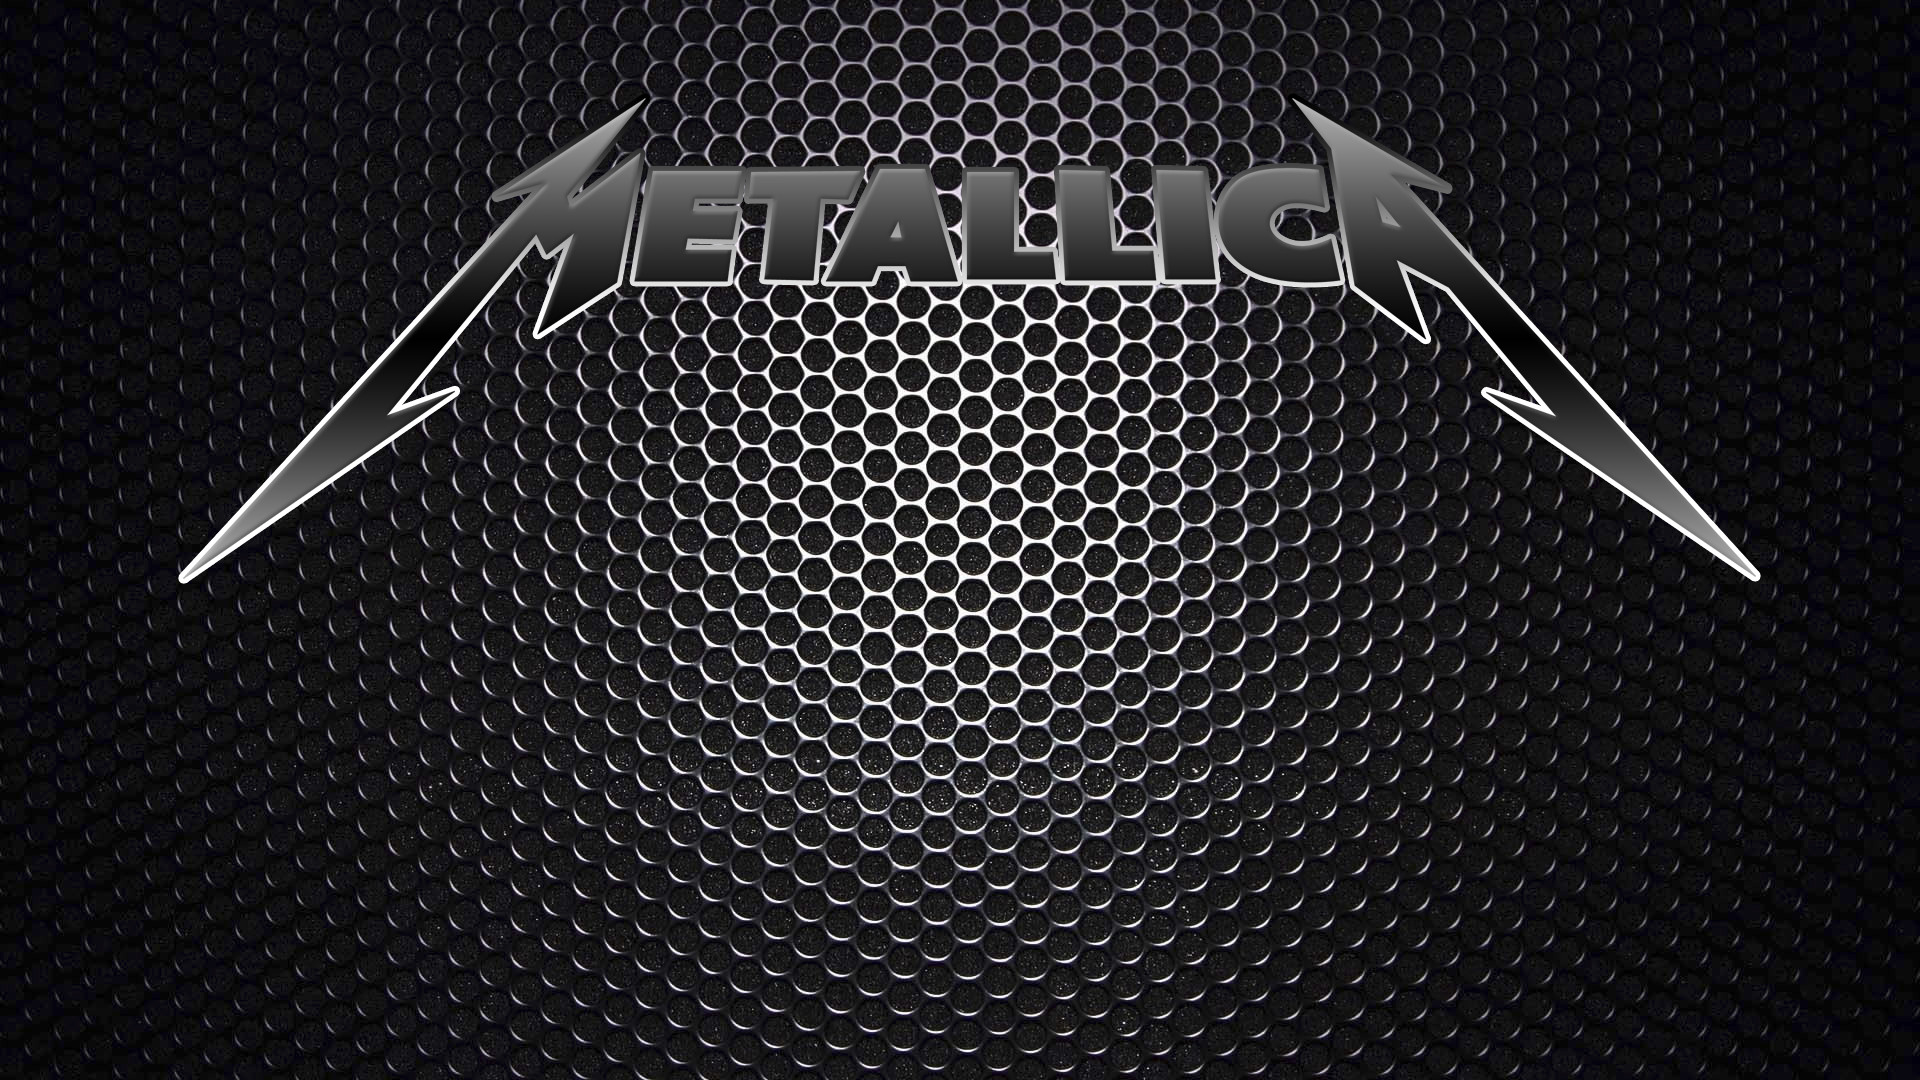 Metallica Wallpapers High Resolution Posted By Michelle Tremblay